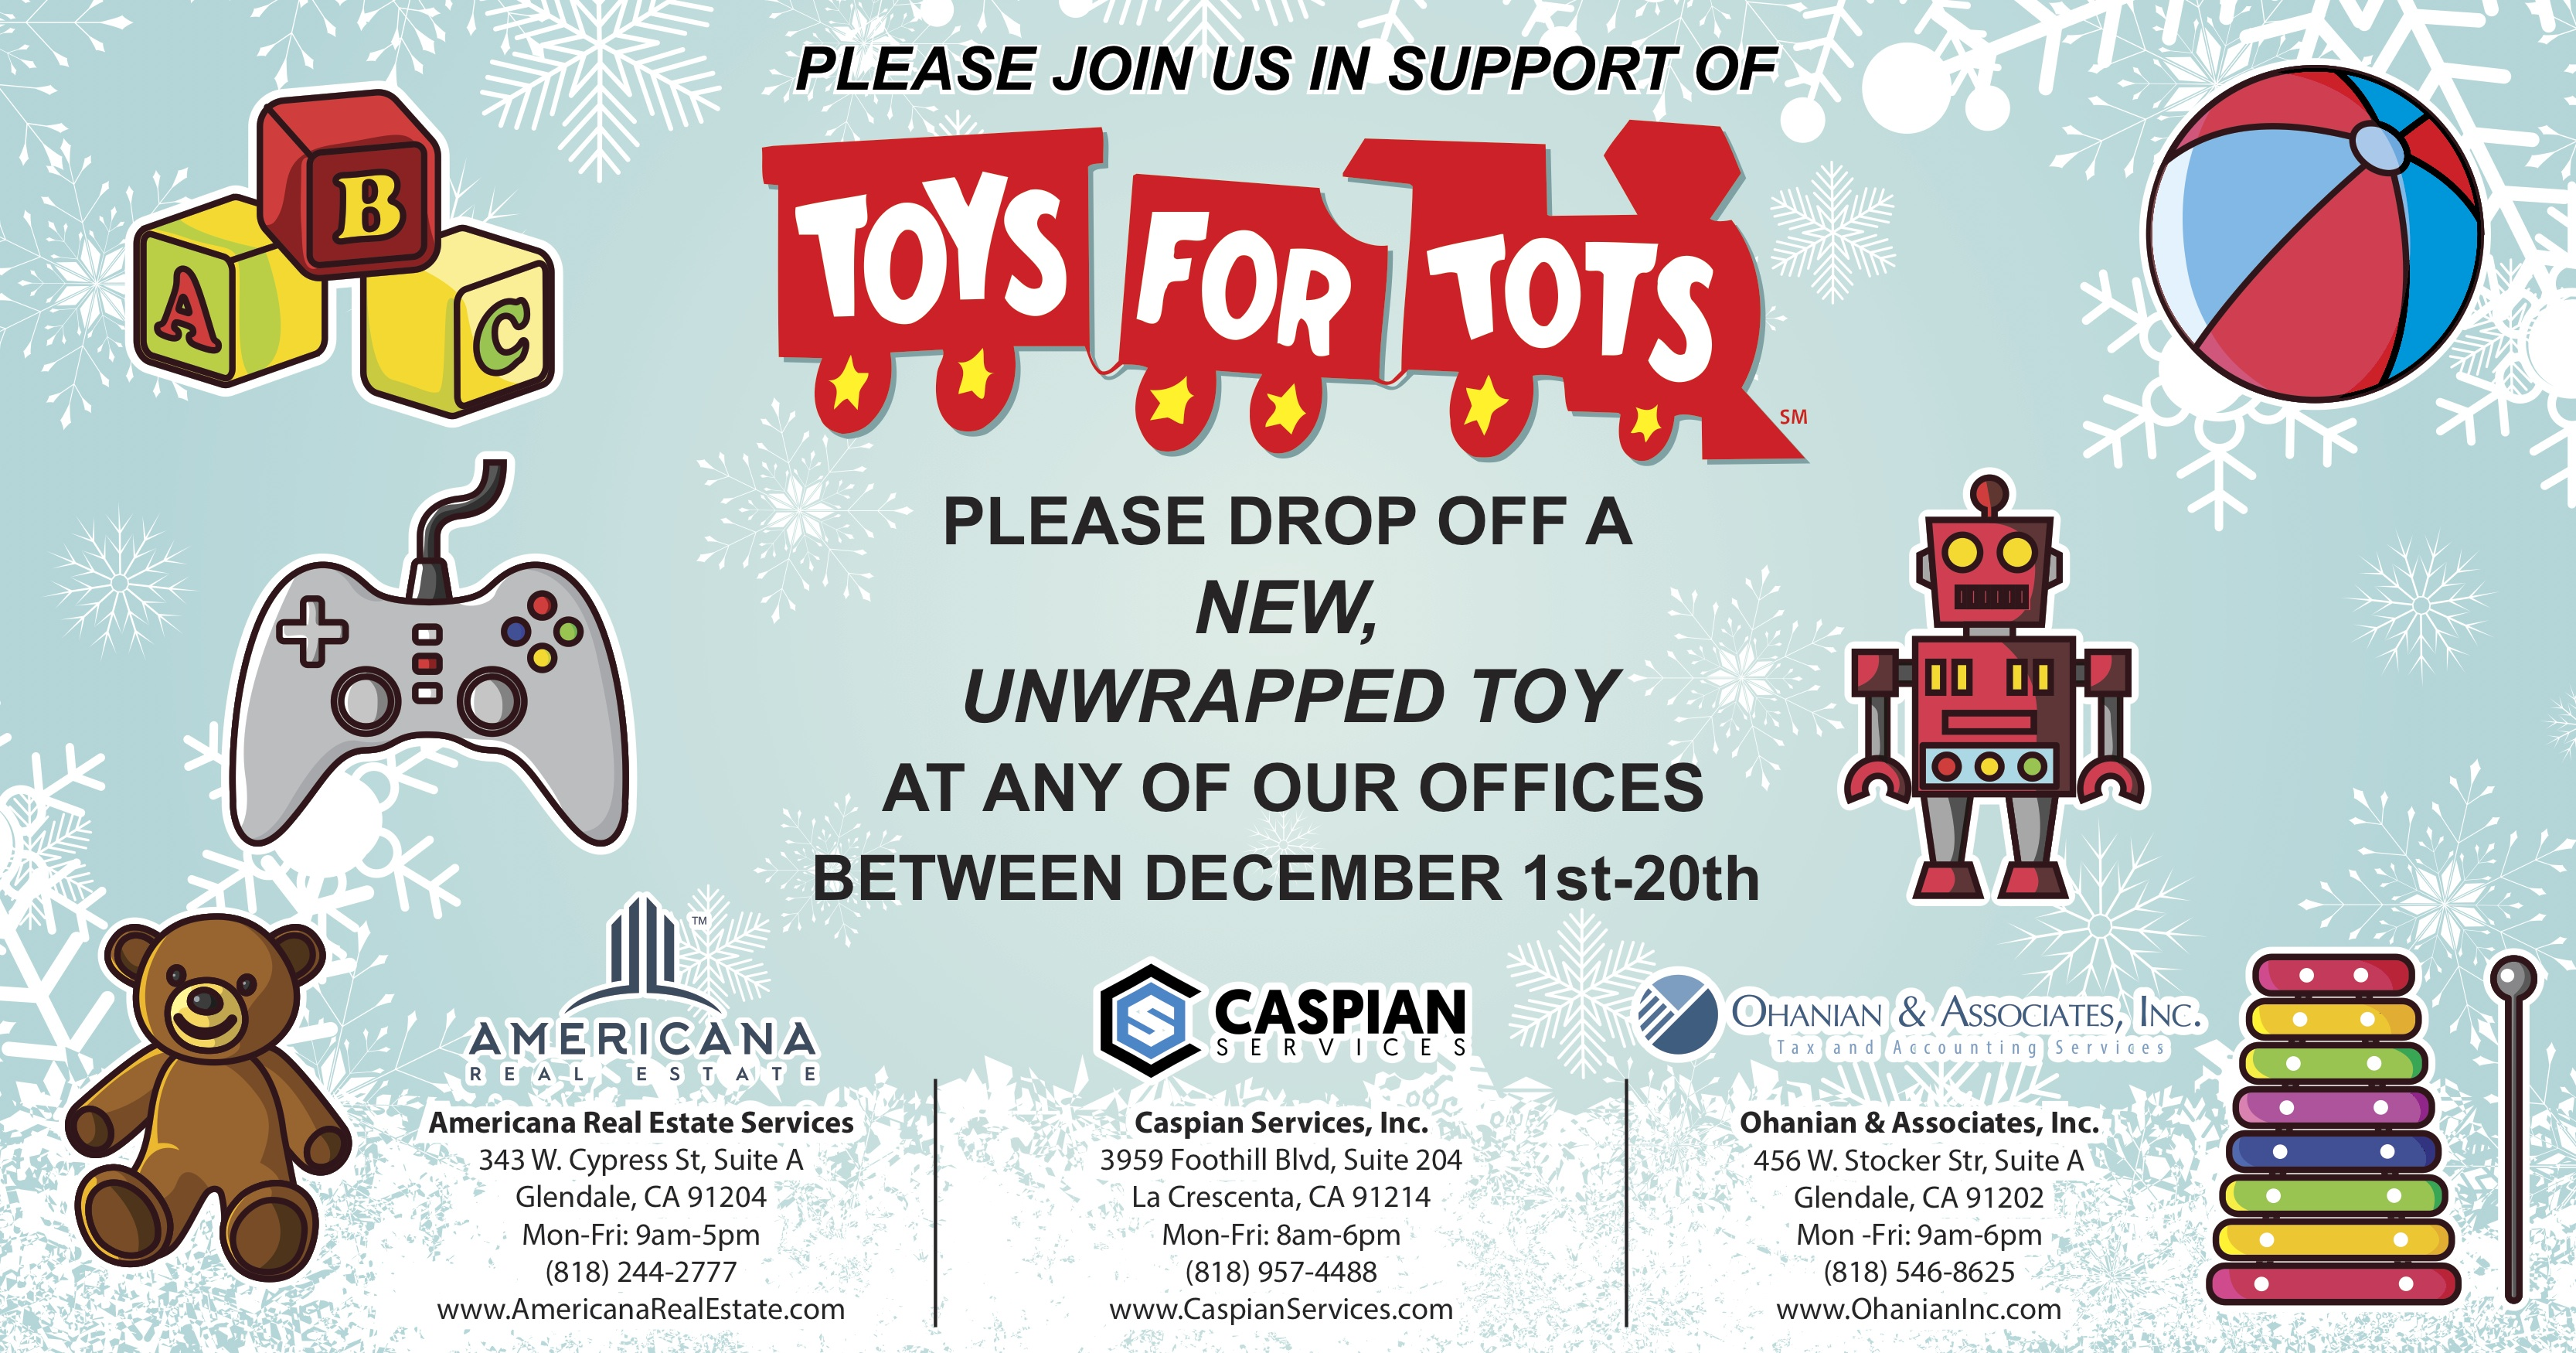 Toys For Tots 2017 Application : Toys for tots holiday season caspian services inc